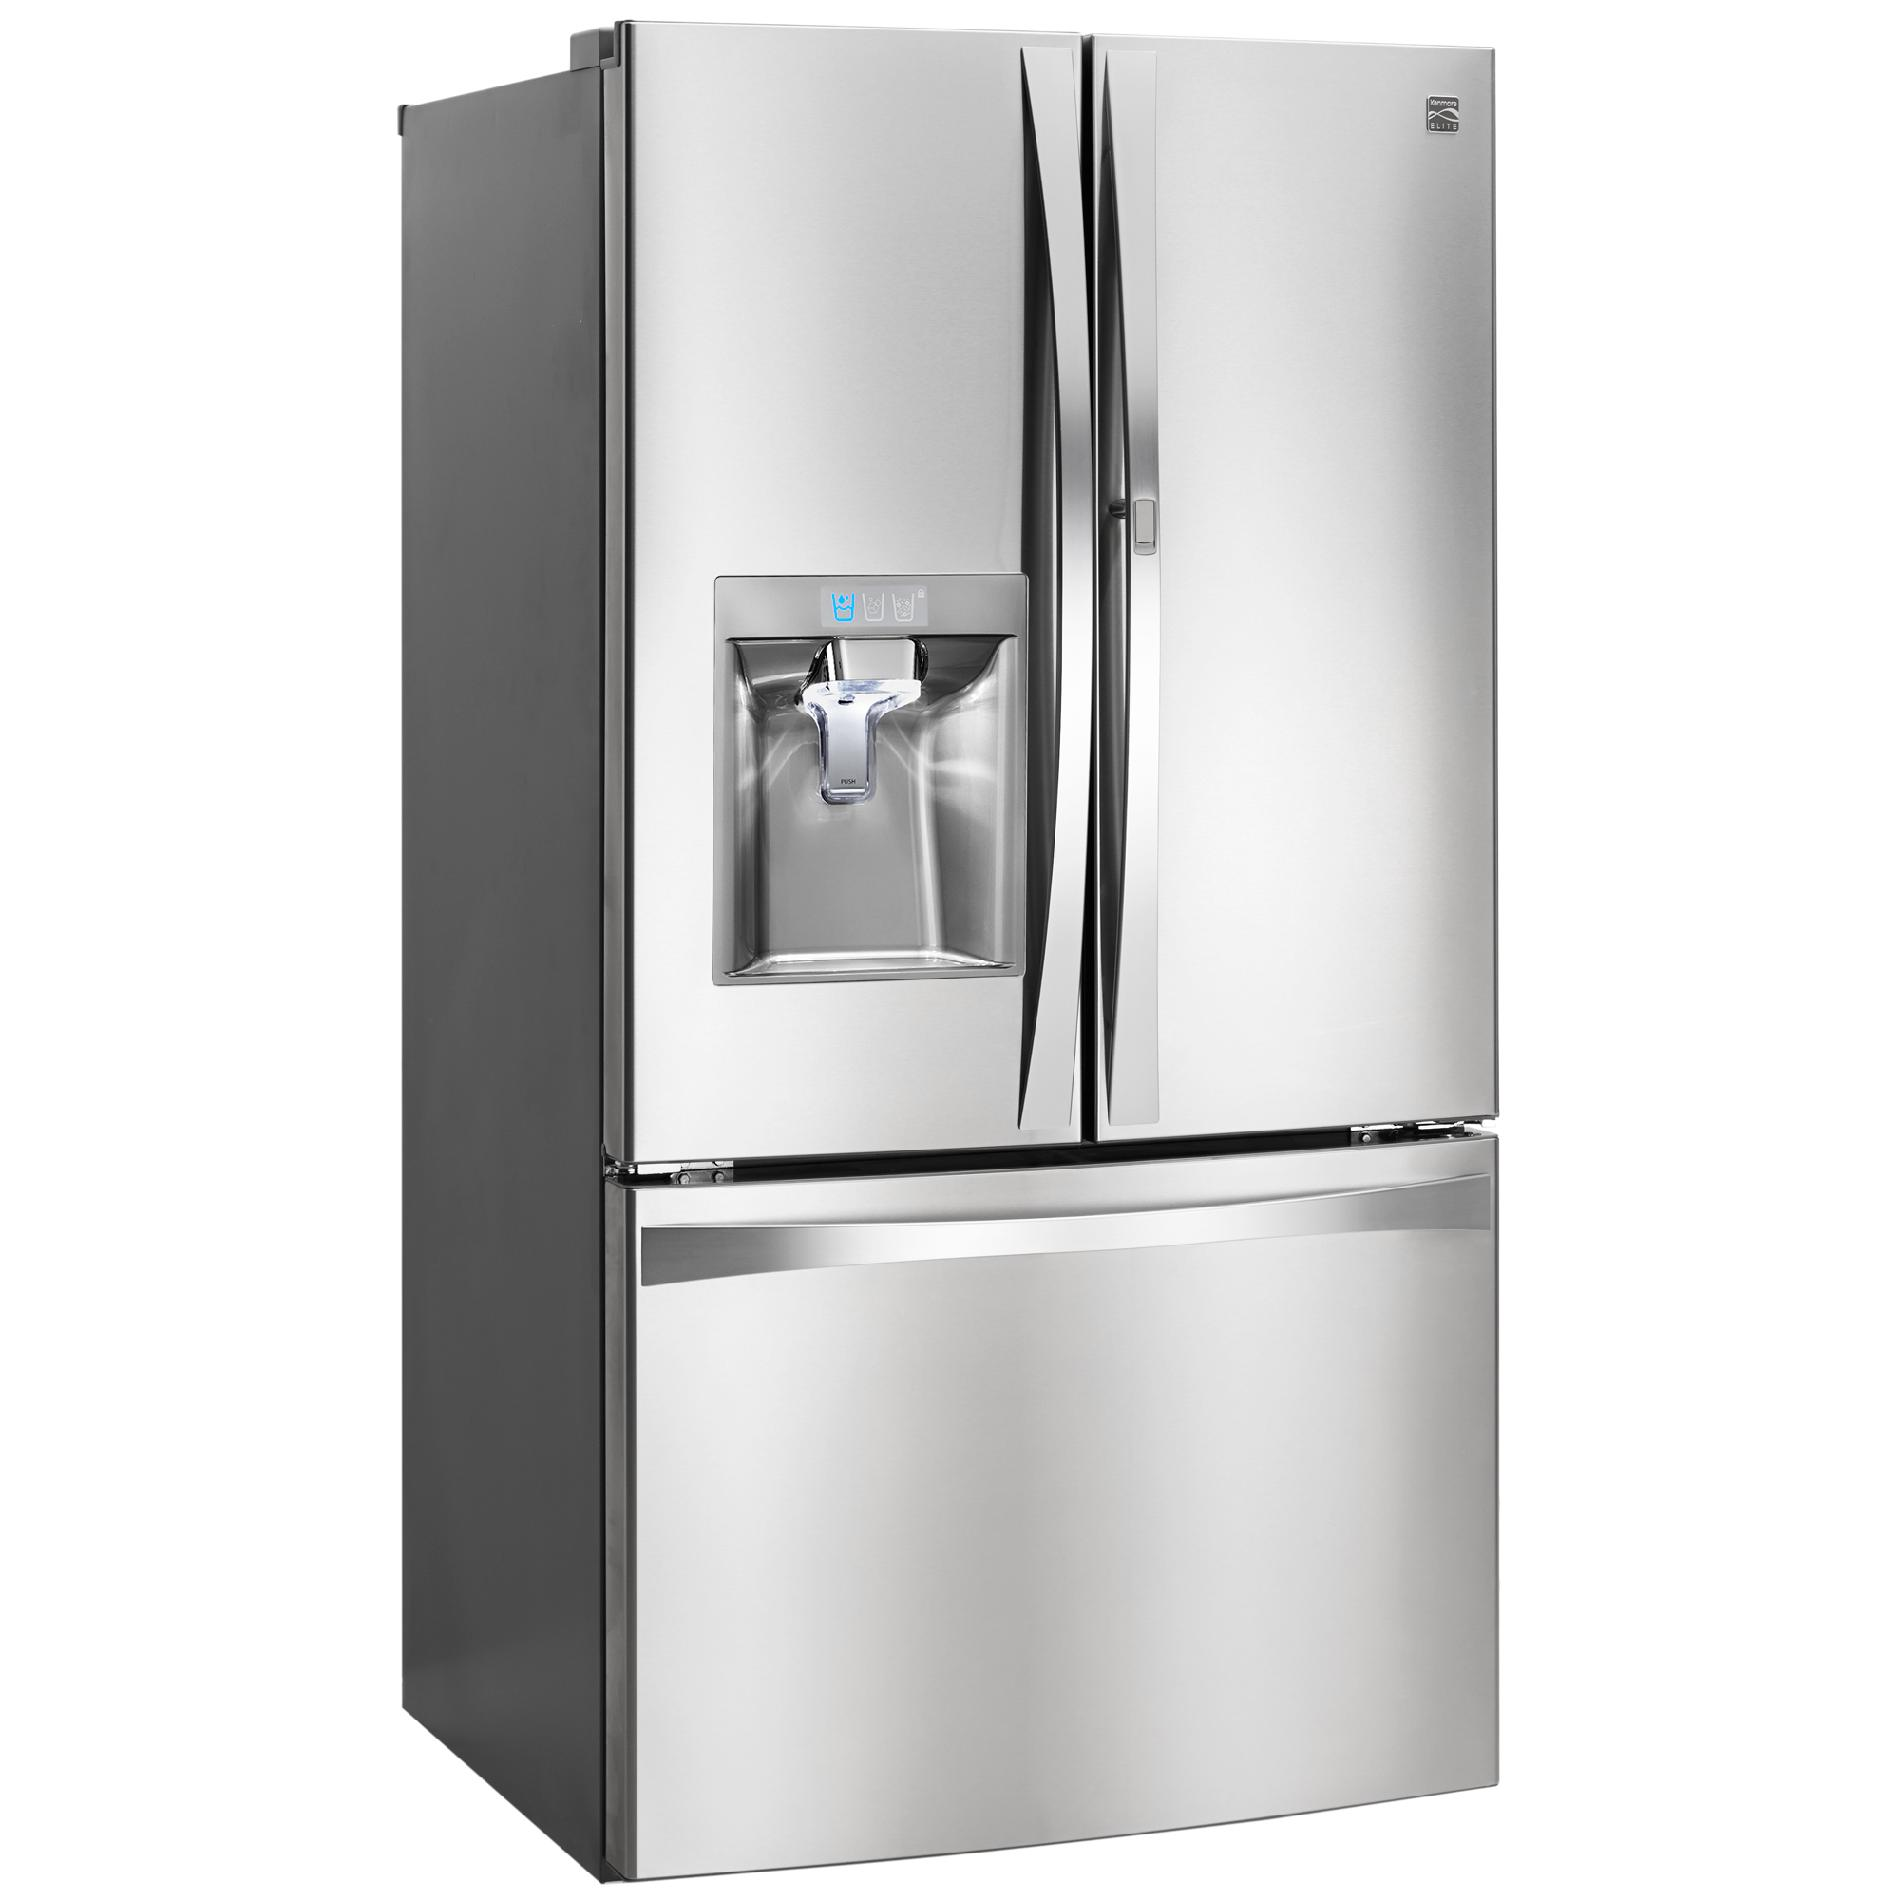 Kenmore Elite 74033 29.6 cu. ft. French Door Bottom-Freezer Refrigerator w/Grab-N-Go™ Door